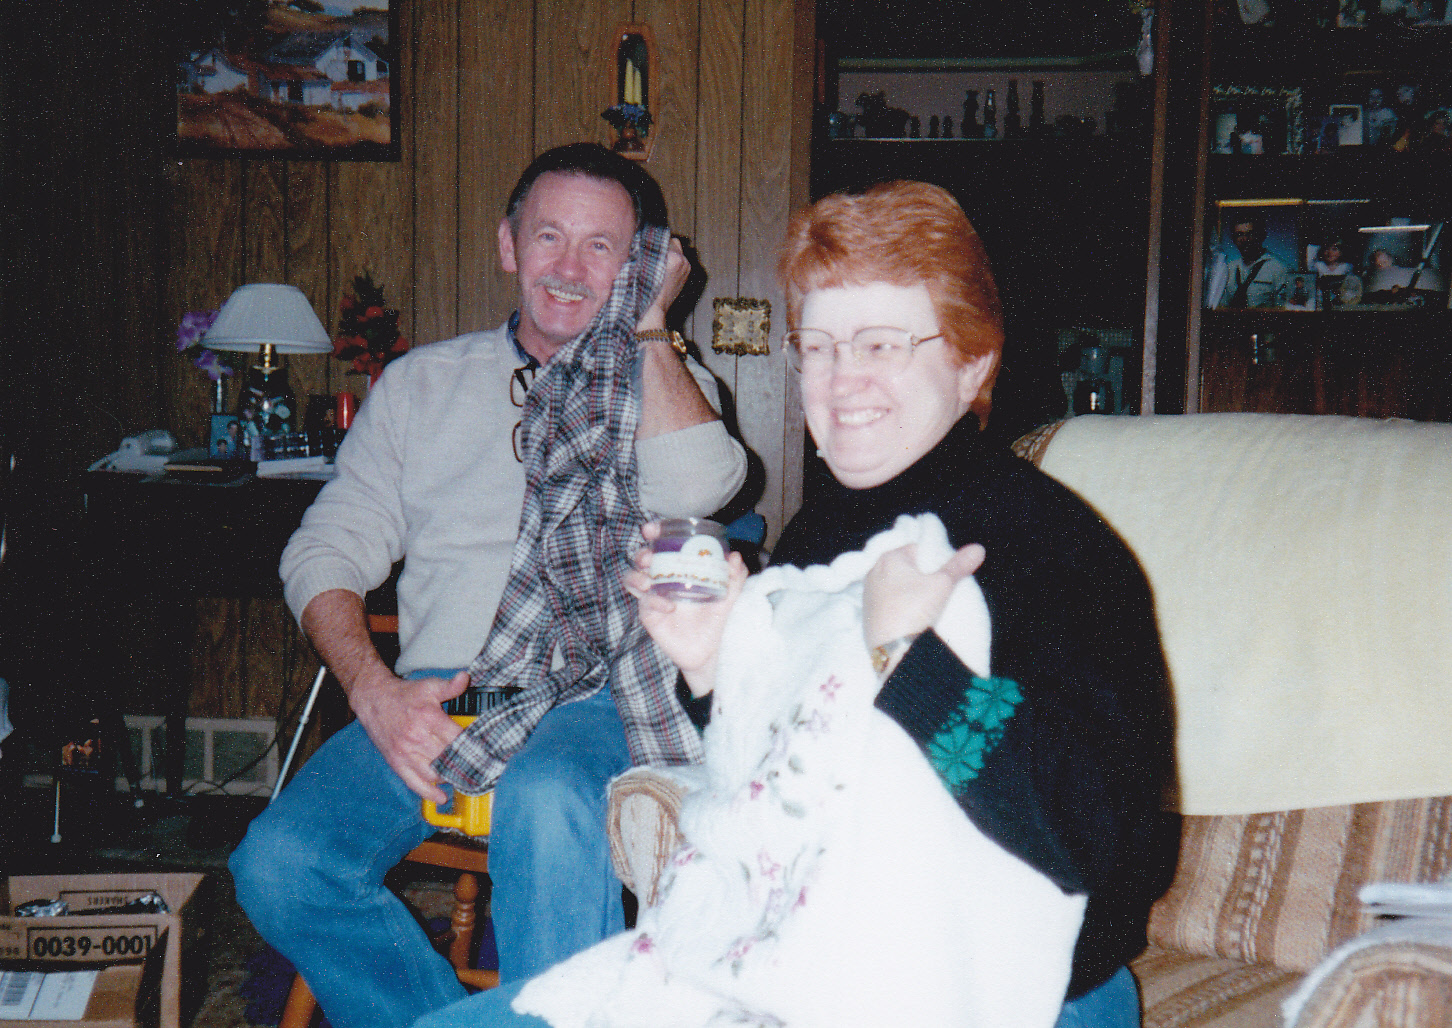 the happy soon to be grandparents for the 5th time - A Christmas Memory 1997